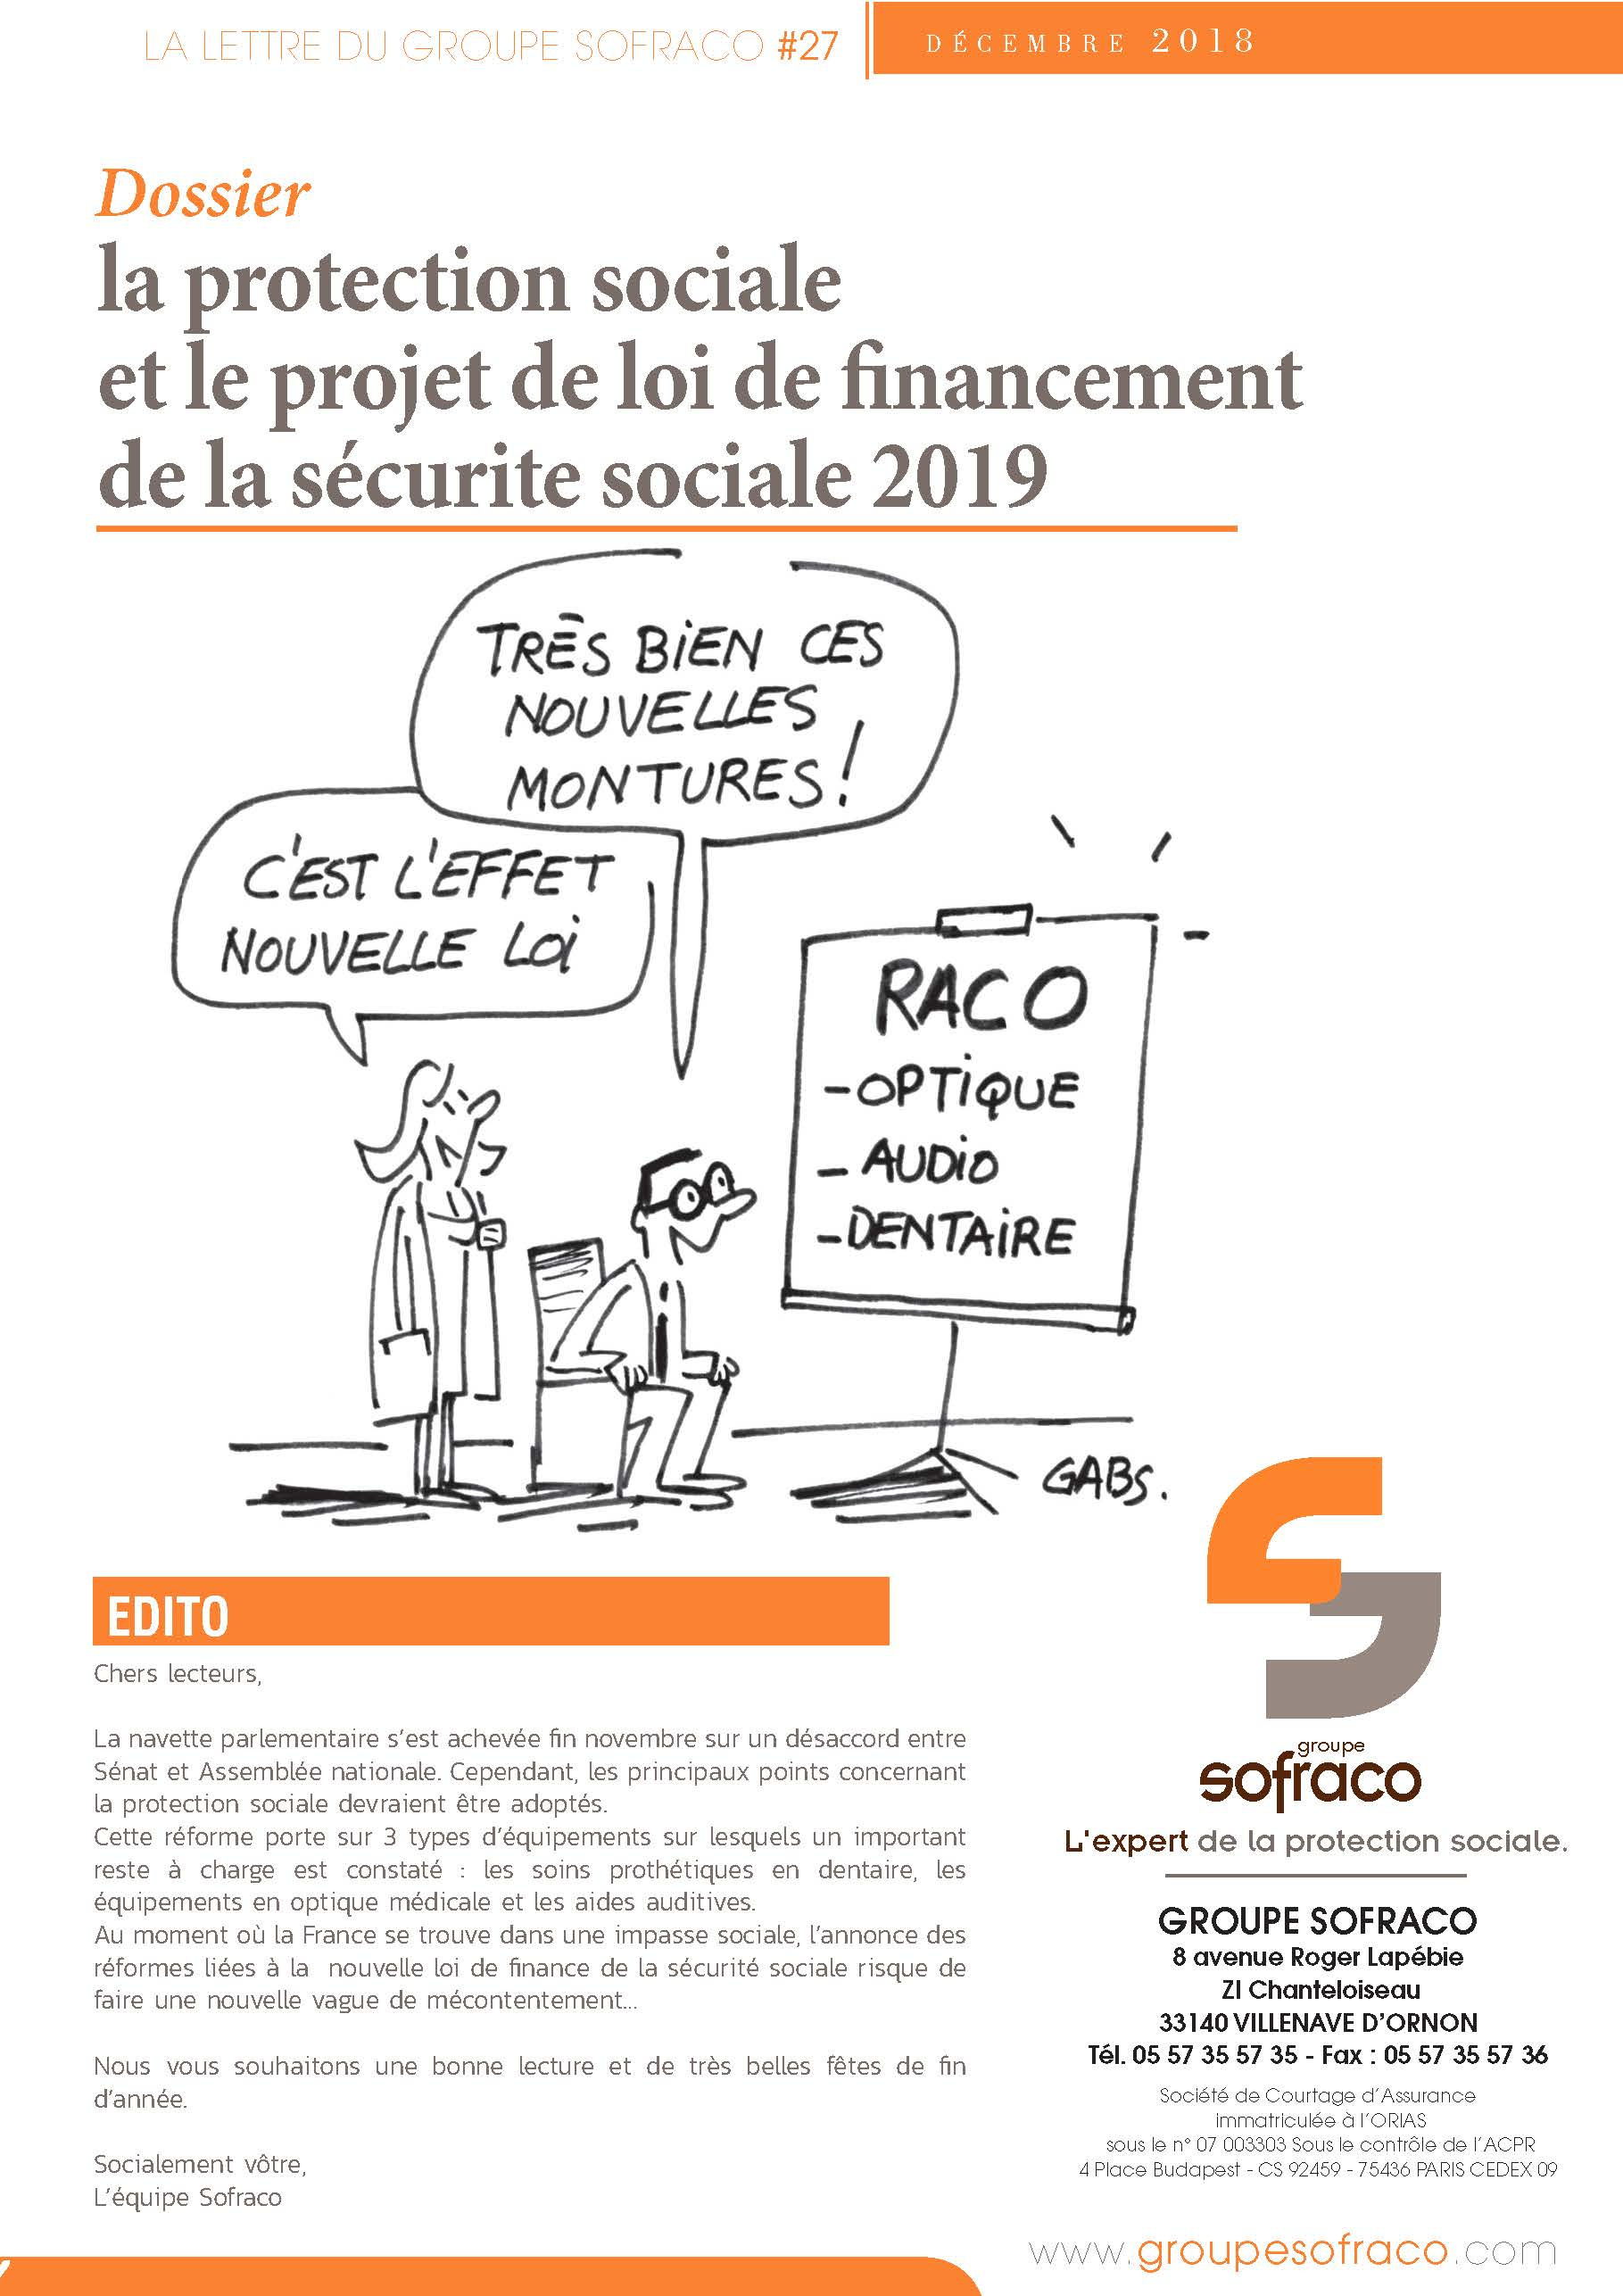 newsletter-sofraco-12-2018-artem-assurances